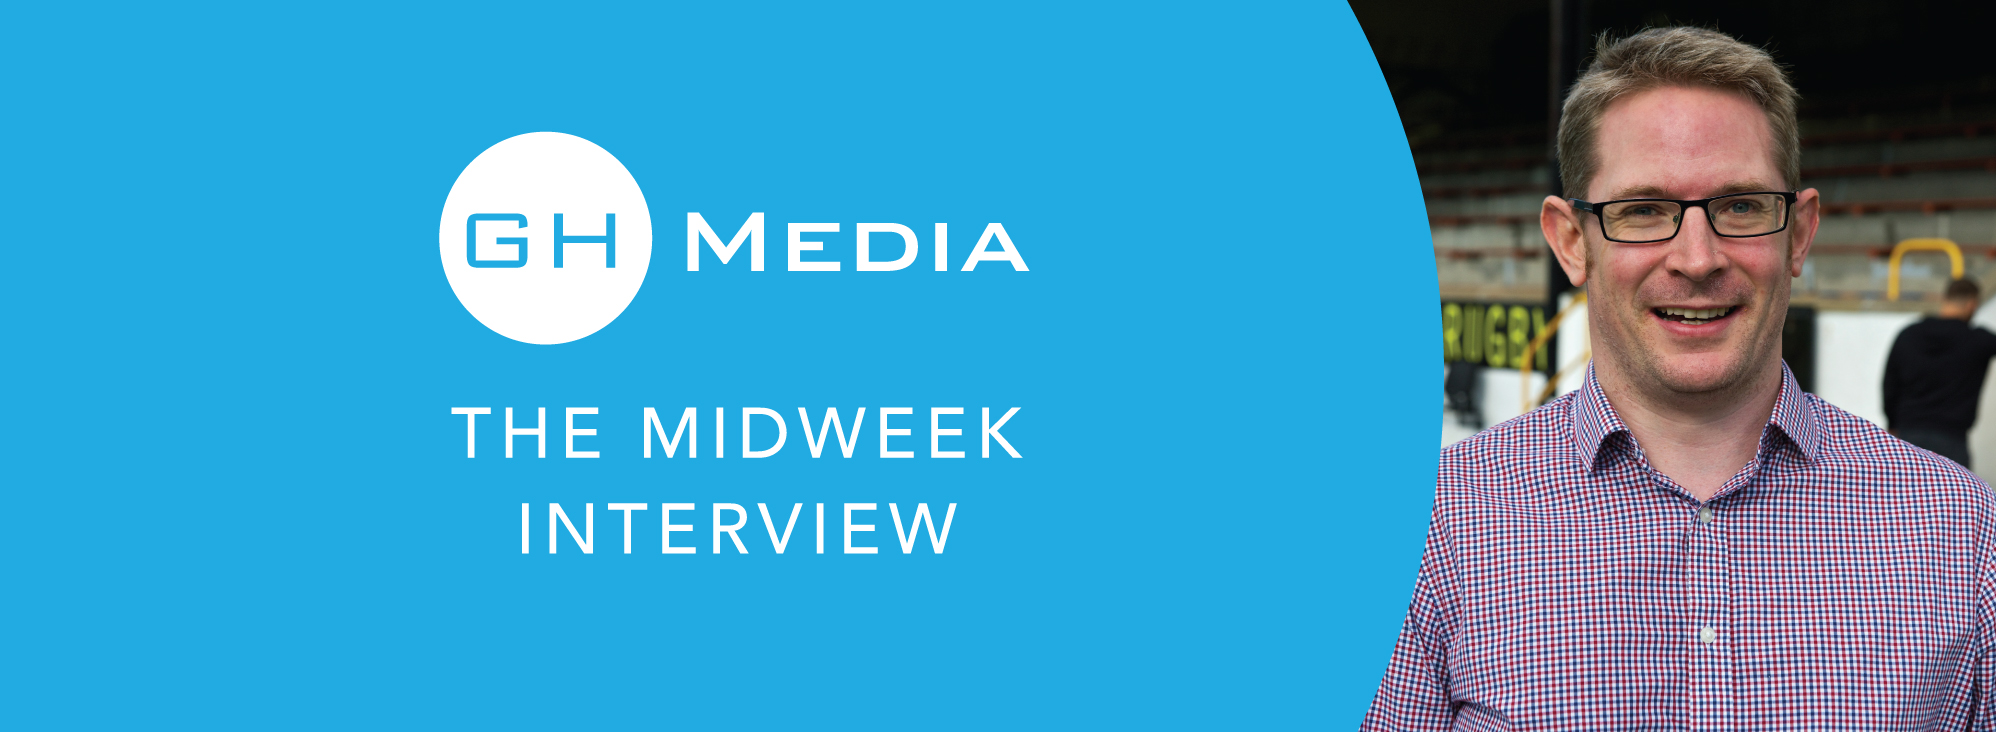 GH Media midweek interview